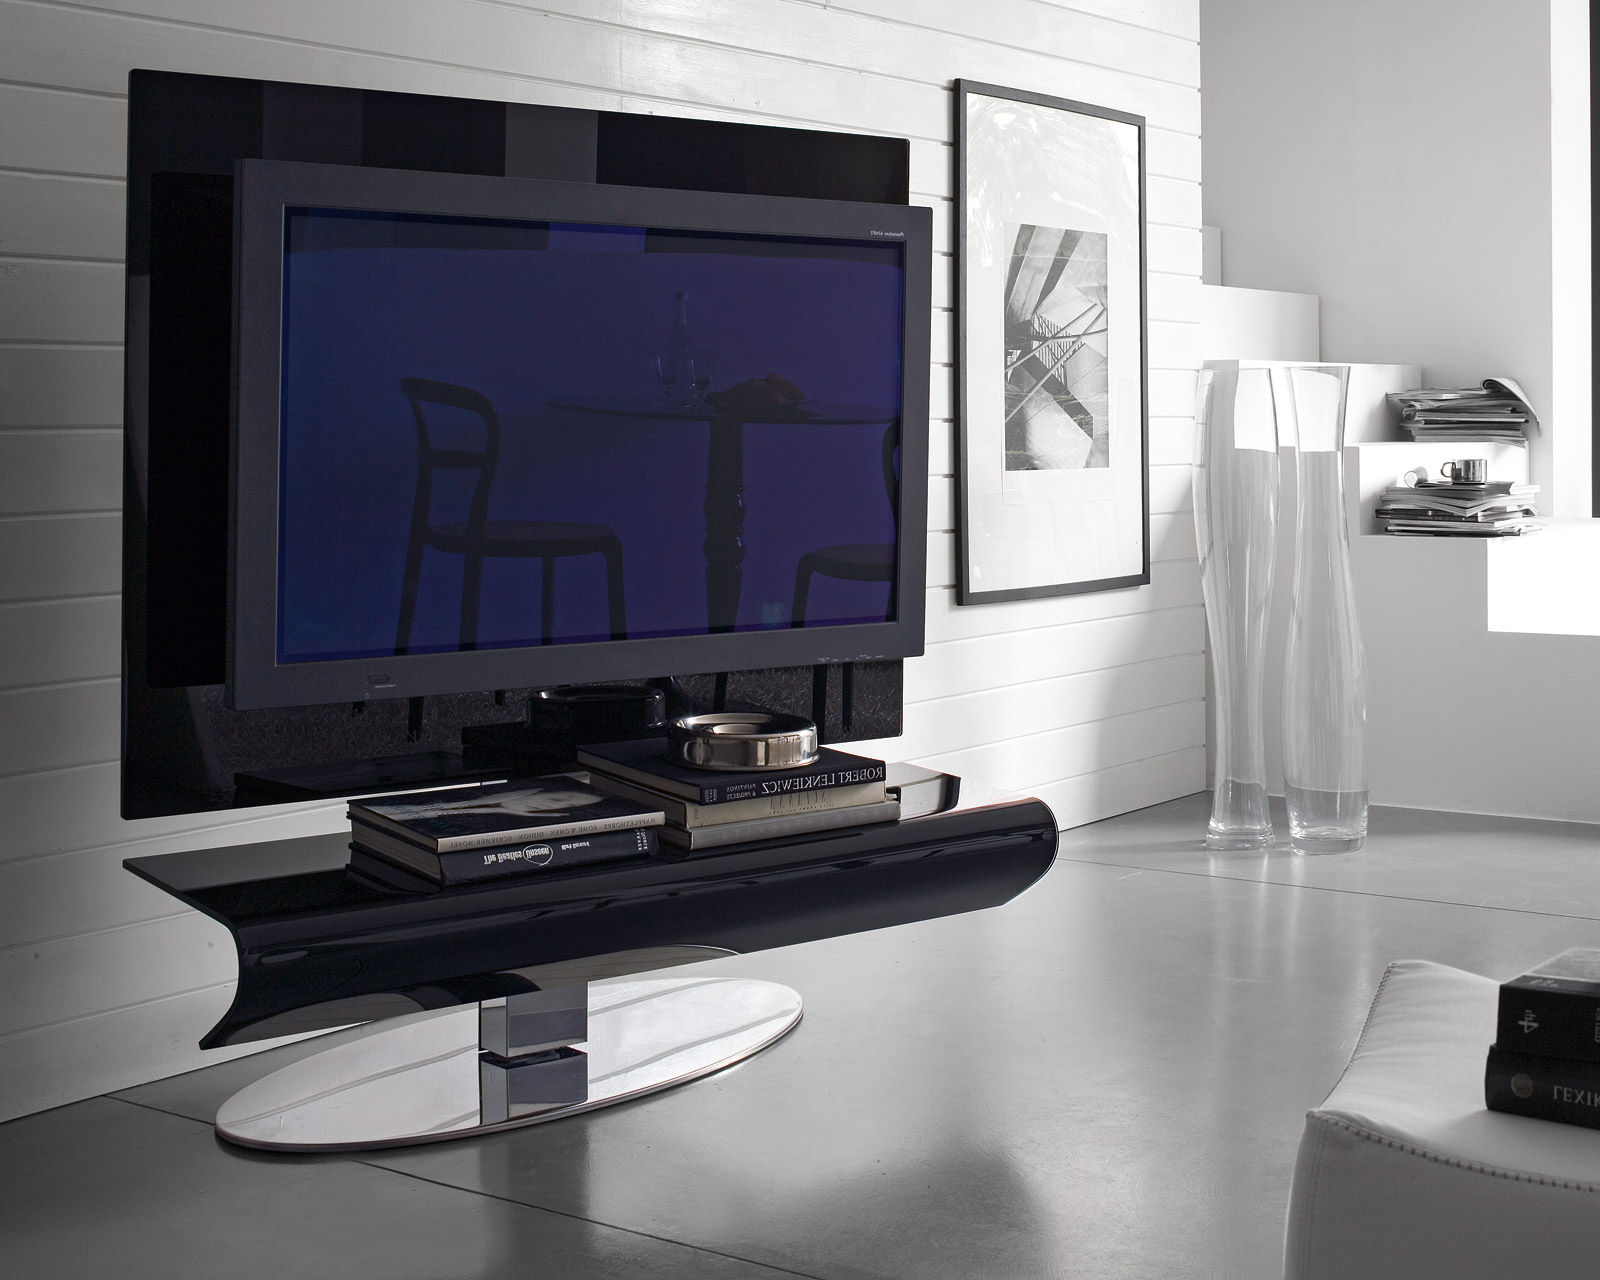 2018 Contemporary Tv Stands For Flat Screens Throughout Wood Corner Tv Stands For Flat Screens — Home Decor (View 1 of 20)